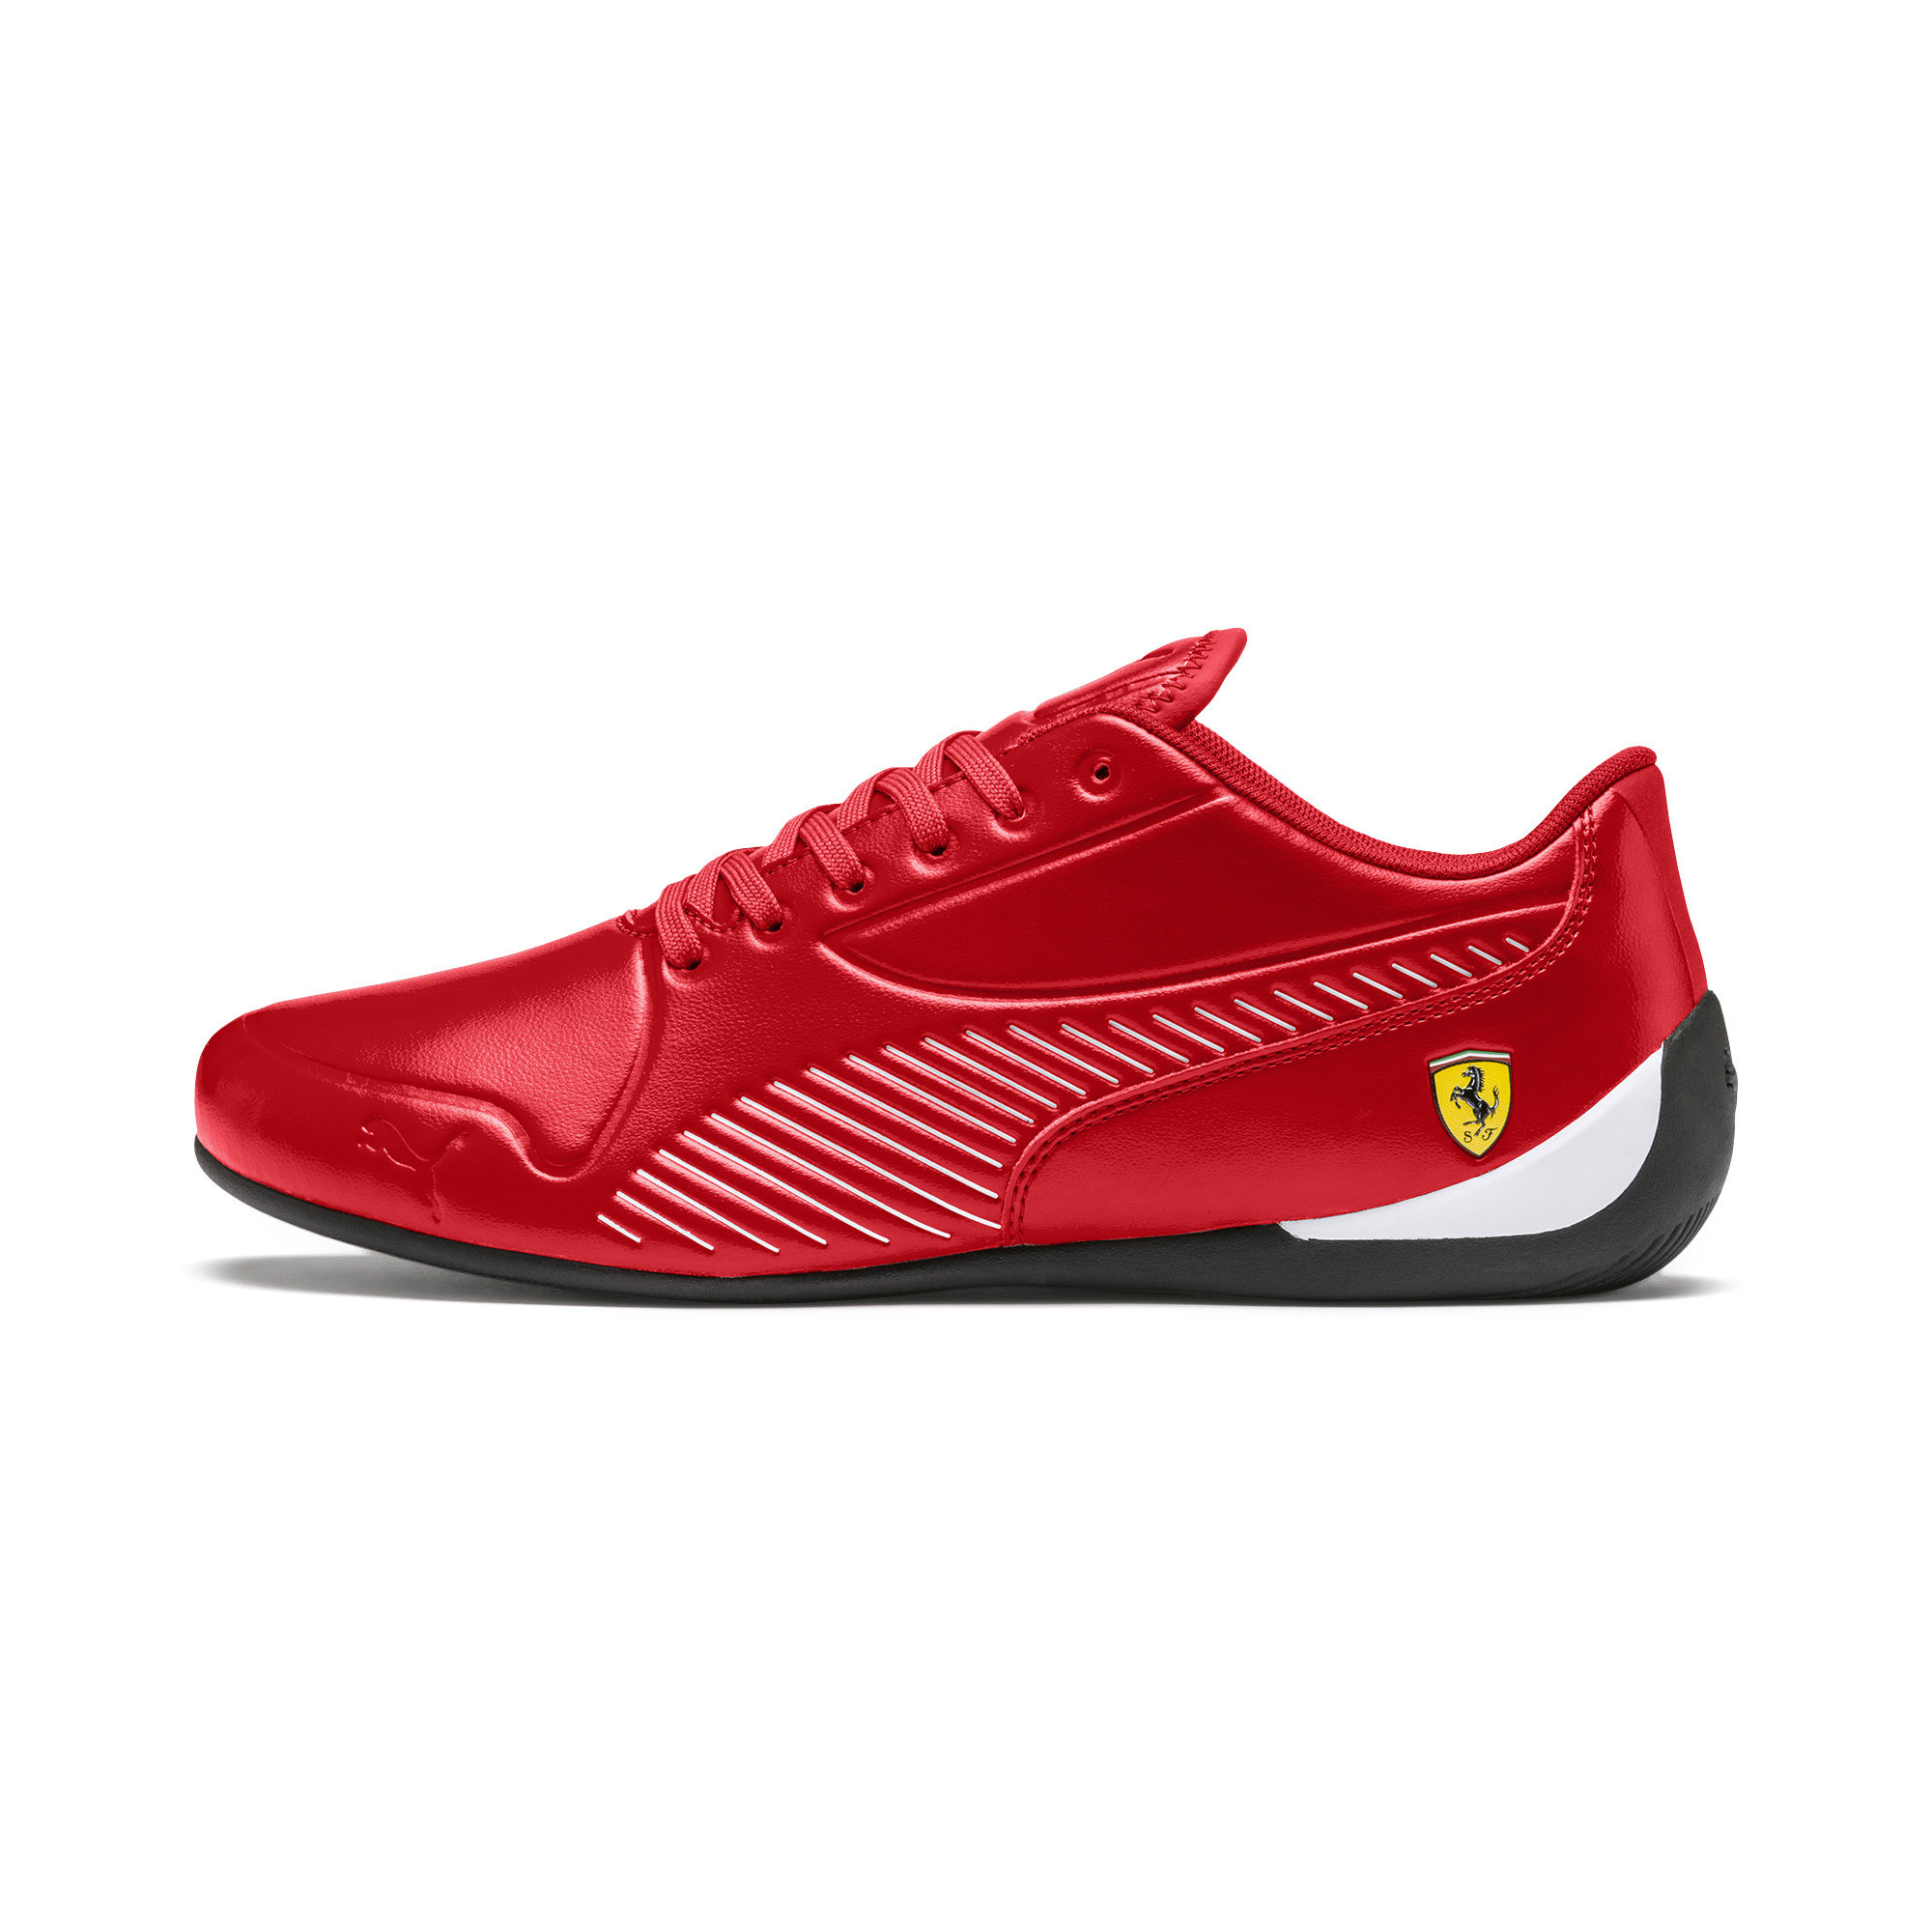 PUMA-Men-039-s-Scuderia-Ferrari-Drift-Cat-7S-Ultra-Shoes thumbnail 17